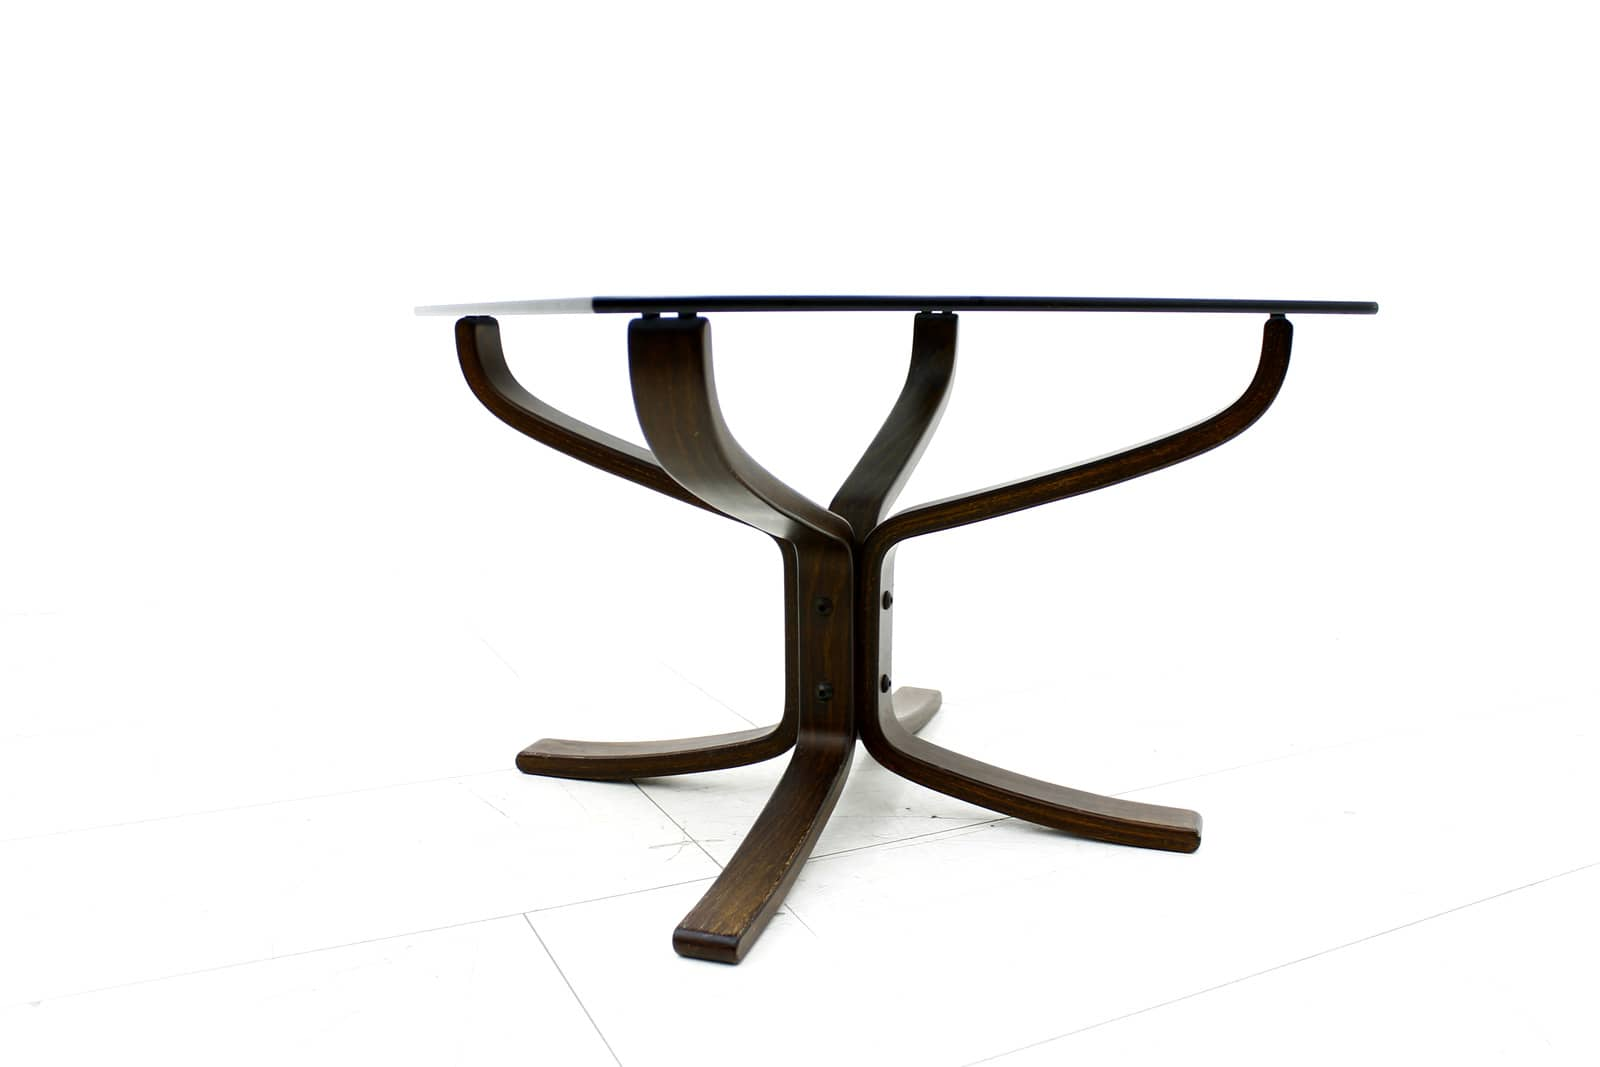 Falcon Coffee Table by Sigurd Resell für Vatne Mobler, Norway 1971 (t)